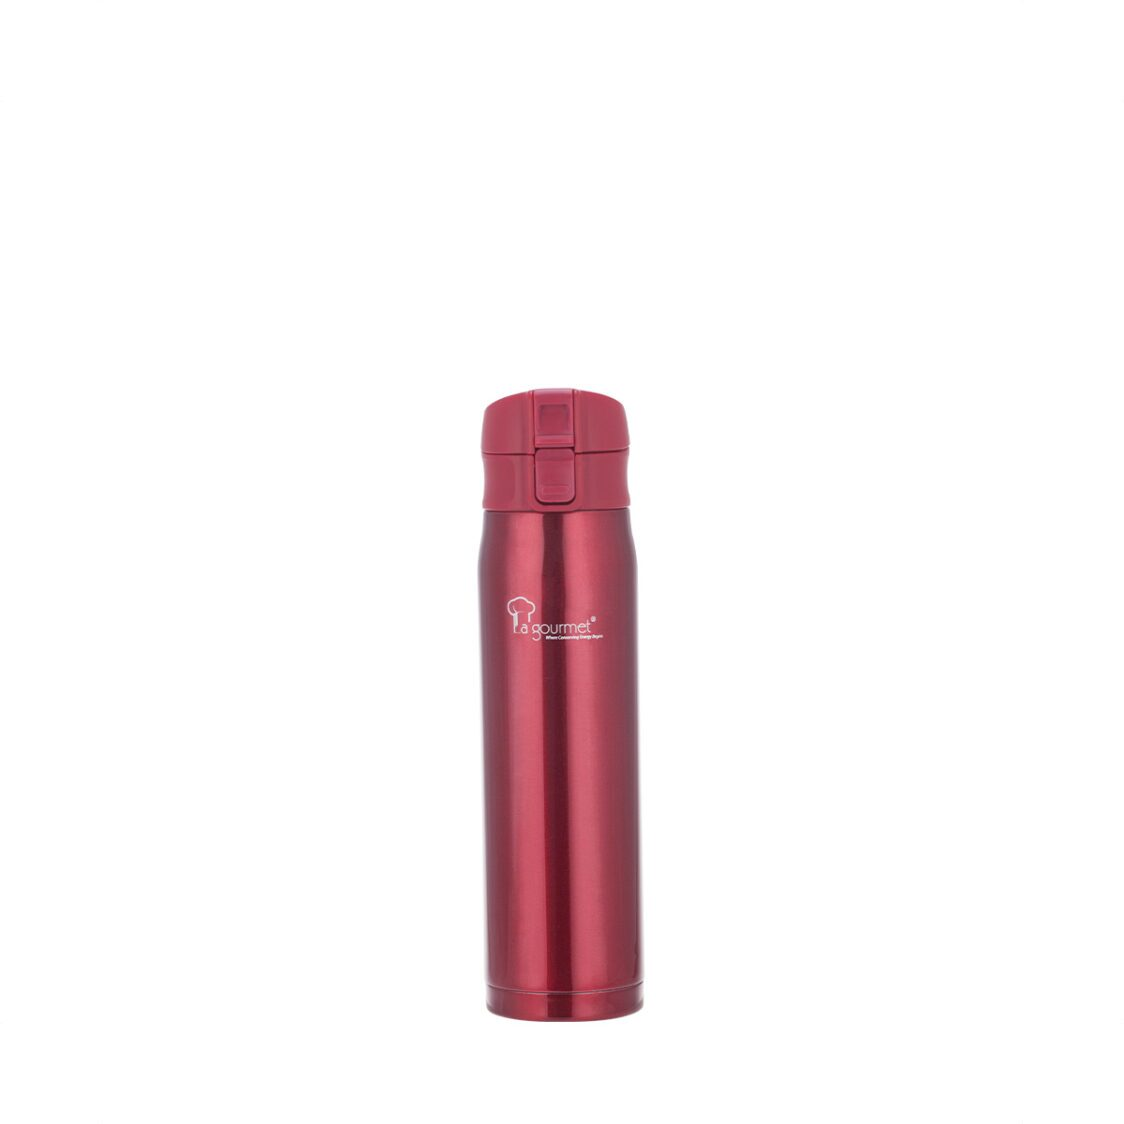 La Gourmet Red 05L One Touch Sport Thermal Tumbler LGRG353177